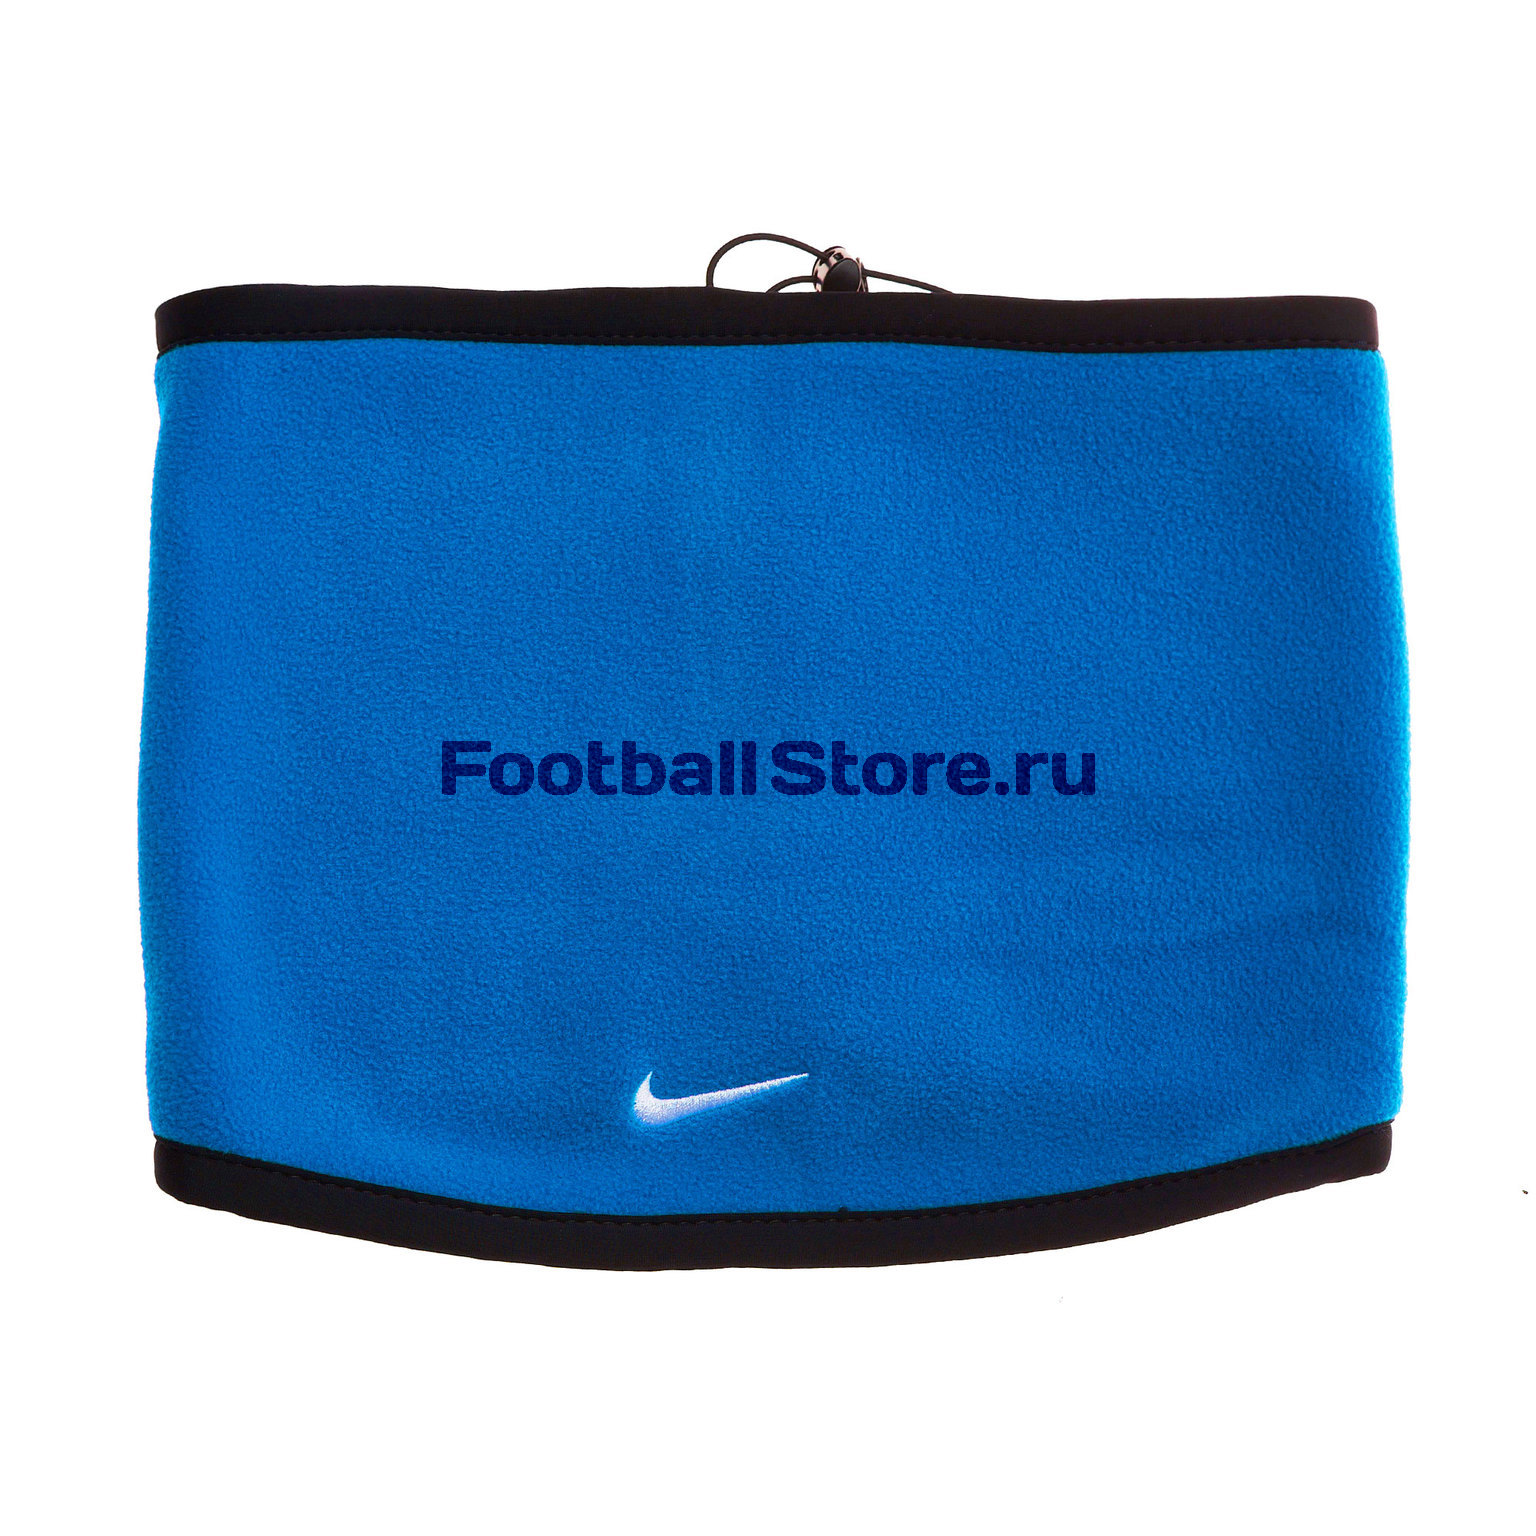 Повязка на шею (Гейтор) Nike Reversible Neck Warmer N.WA.53.443.OS потолочная люстра n light n light 8910 89102 8 chrome wengue blue led